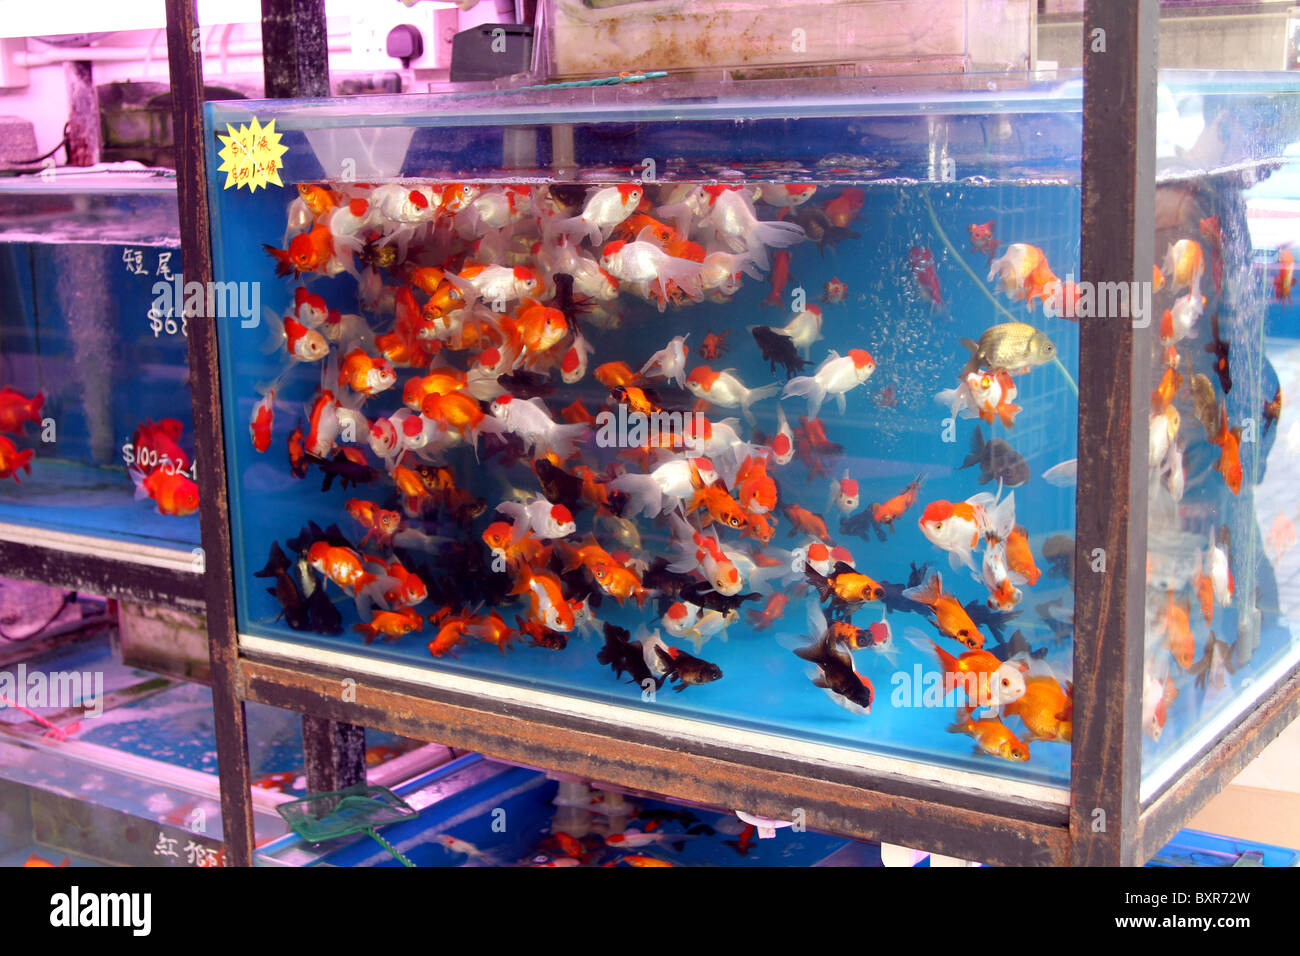 Aquarium pet shop selling goldfish in plastic bags in the for Tropical fish shop